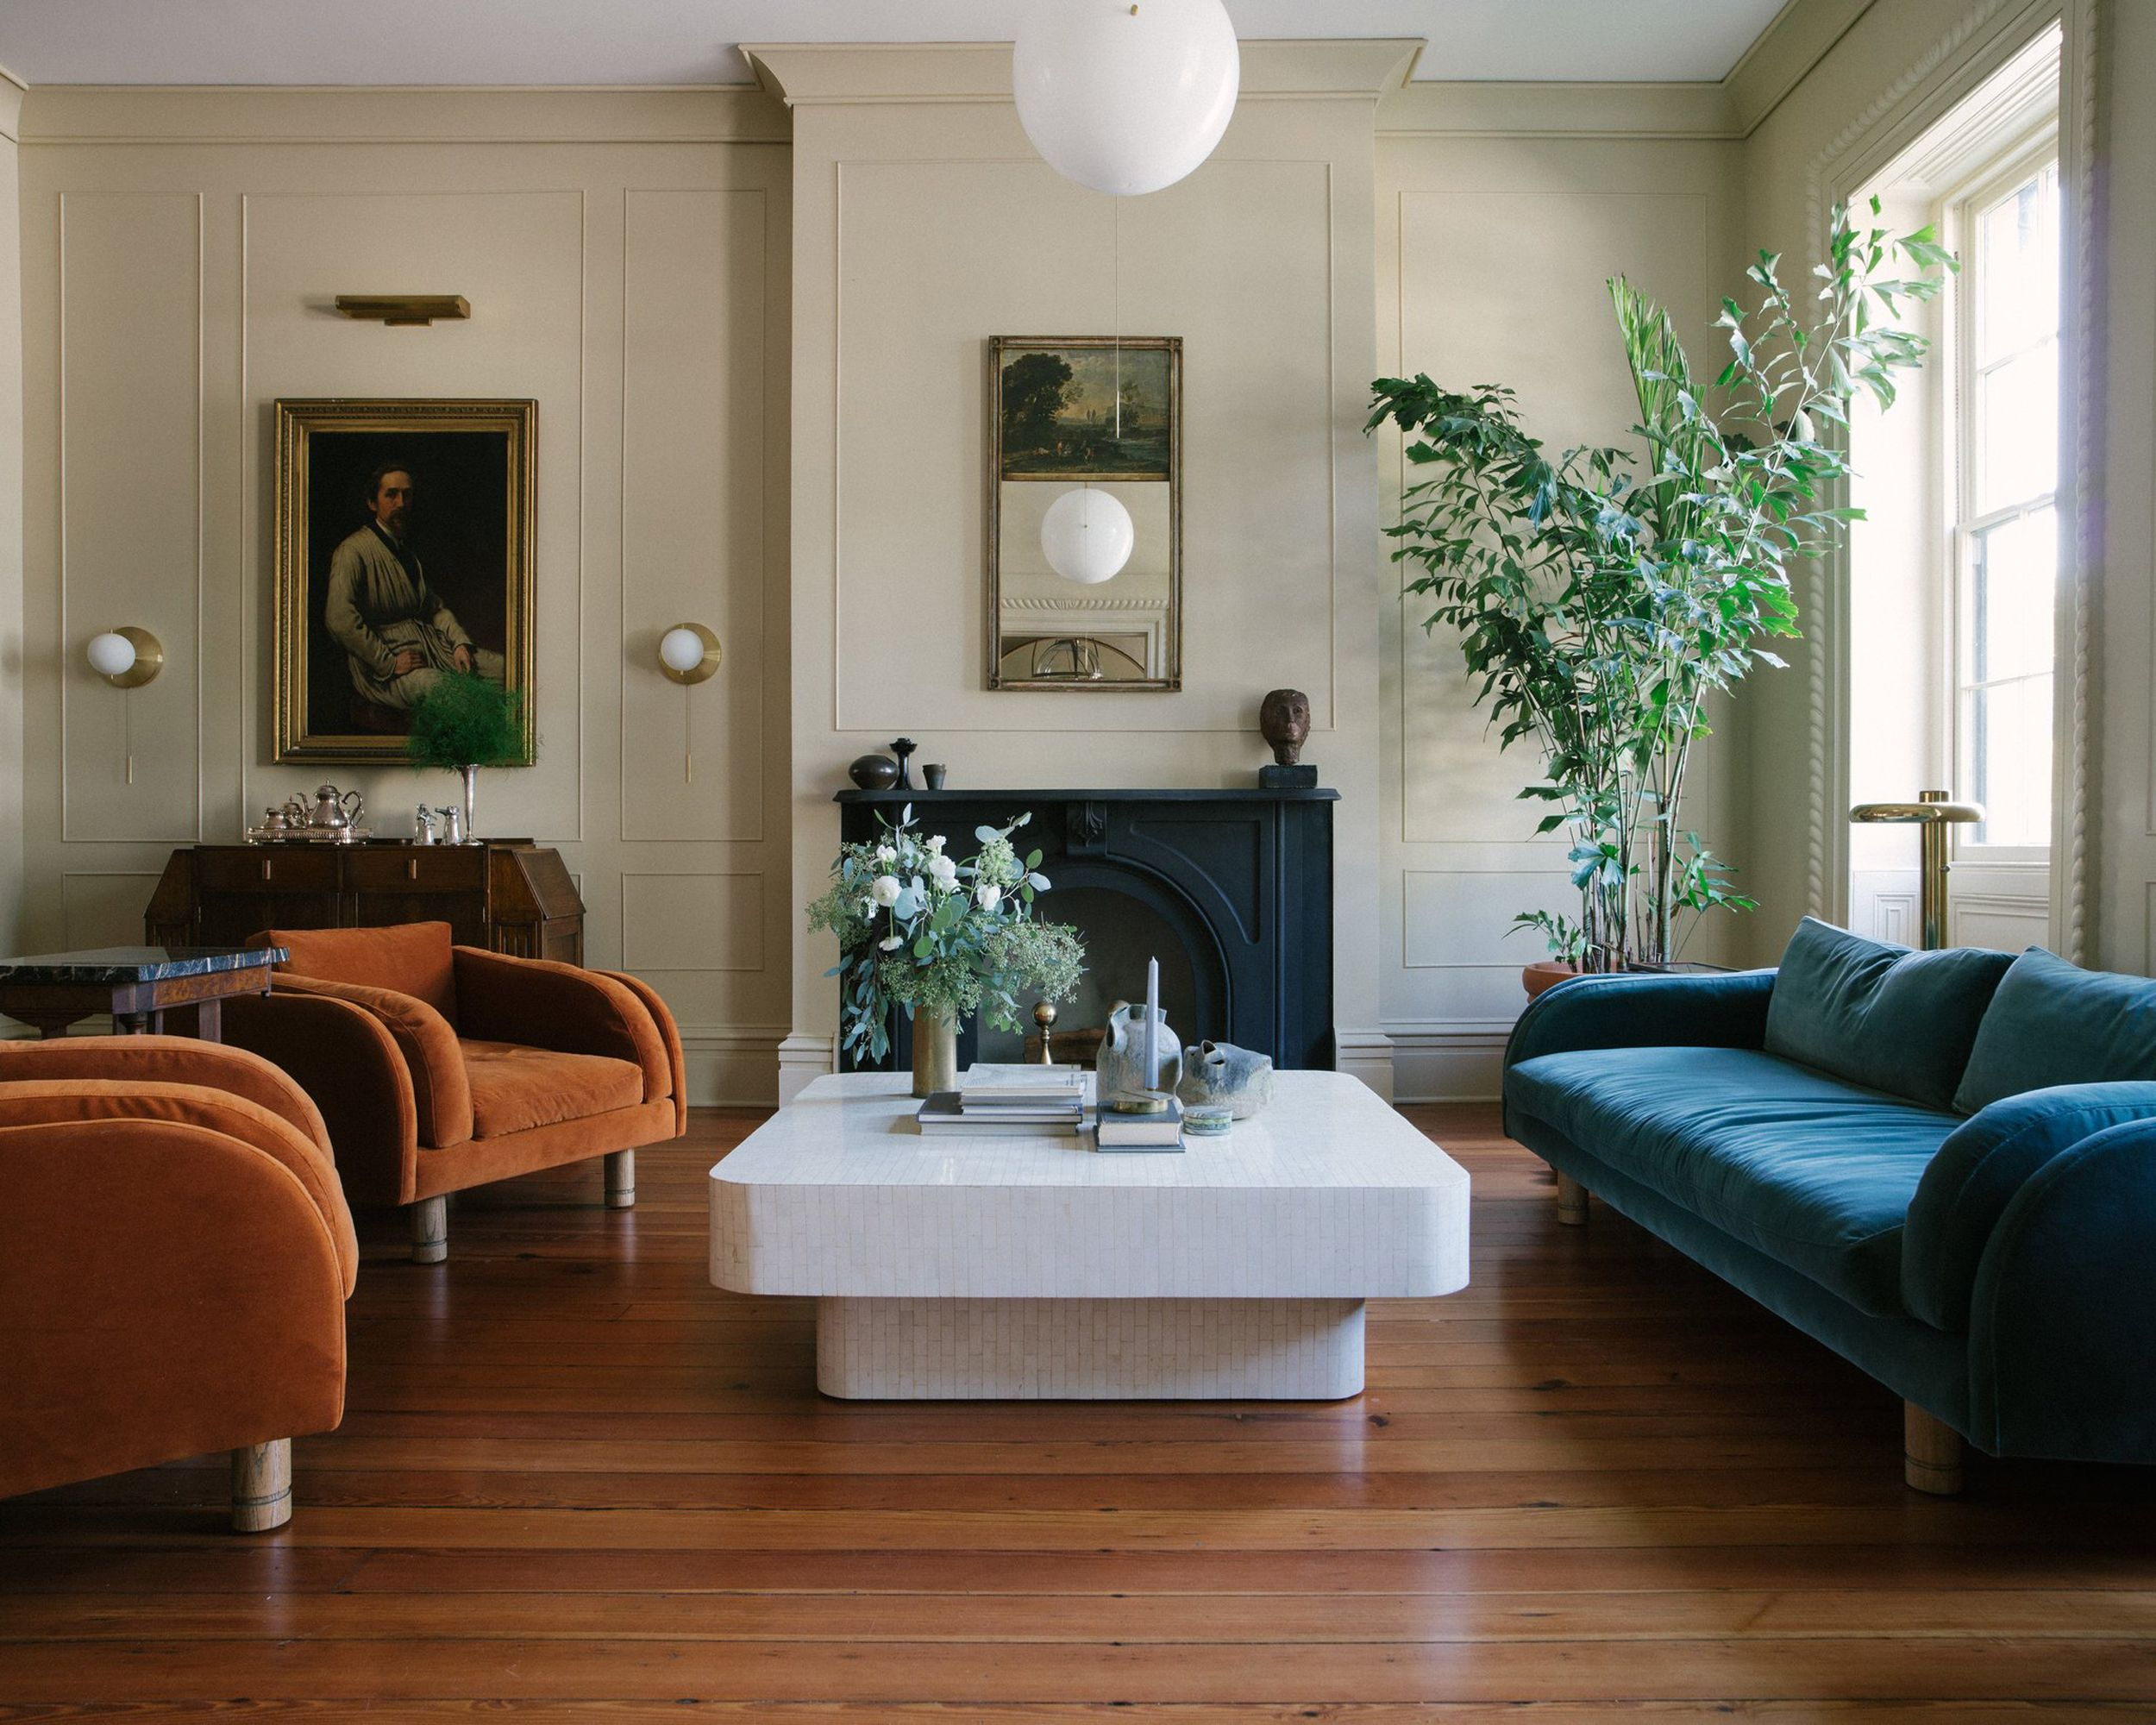 Modern Victorian Style Wall Treatments And Art Get The Look Emily Henderson Family Room Design Parlor Room Coastal Living Rooms